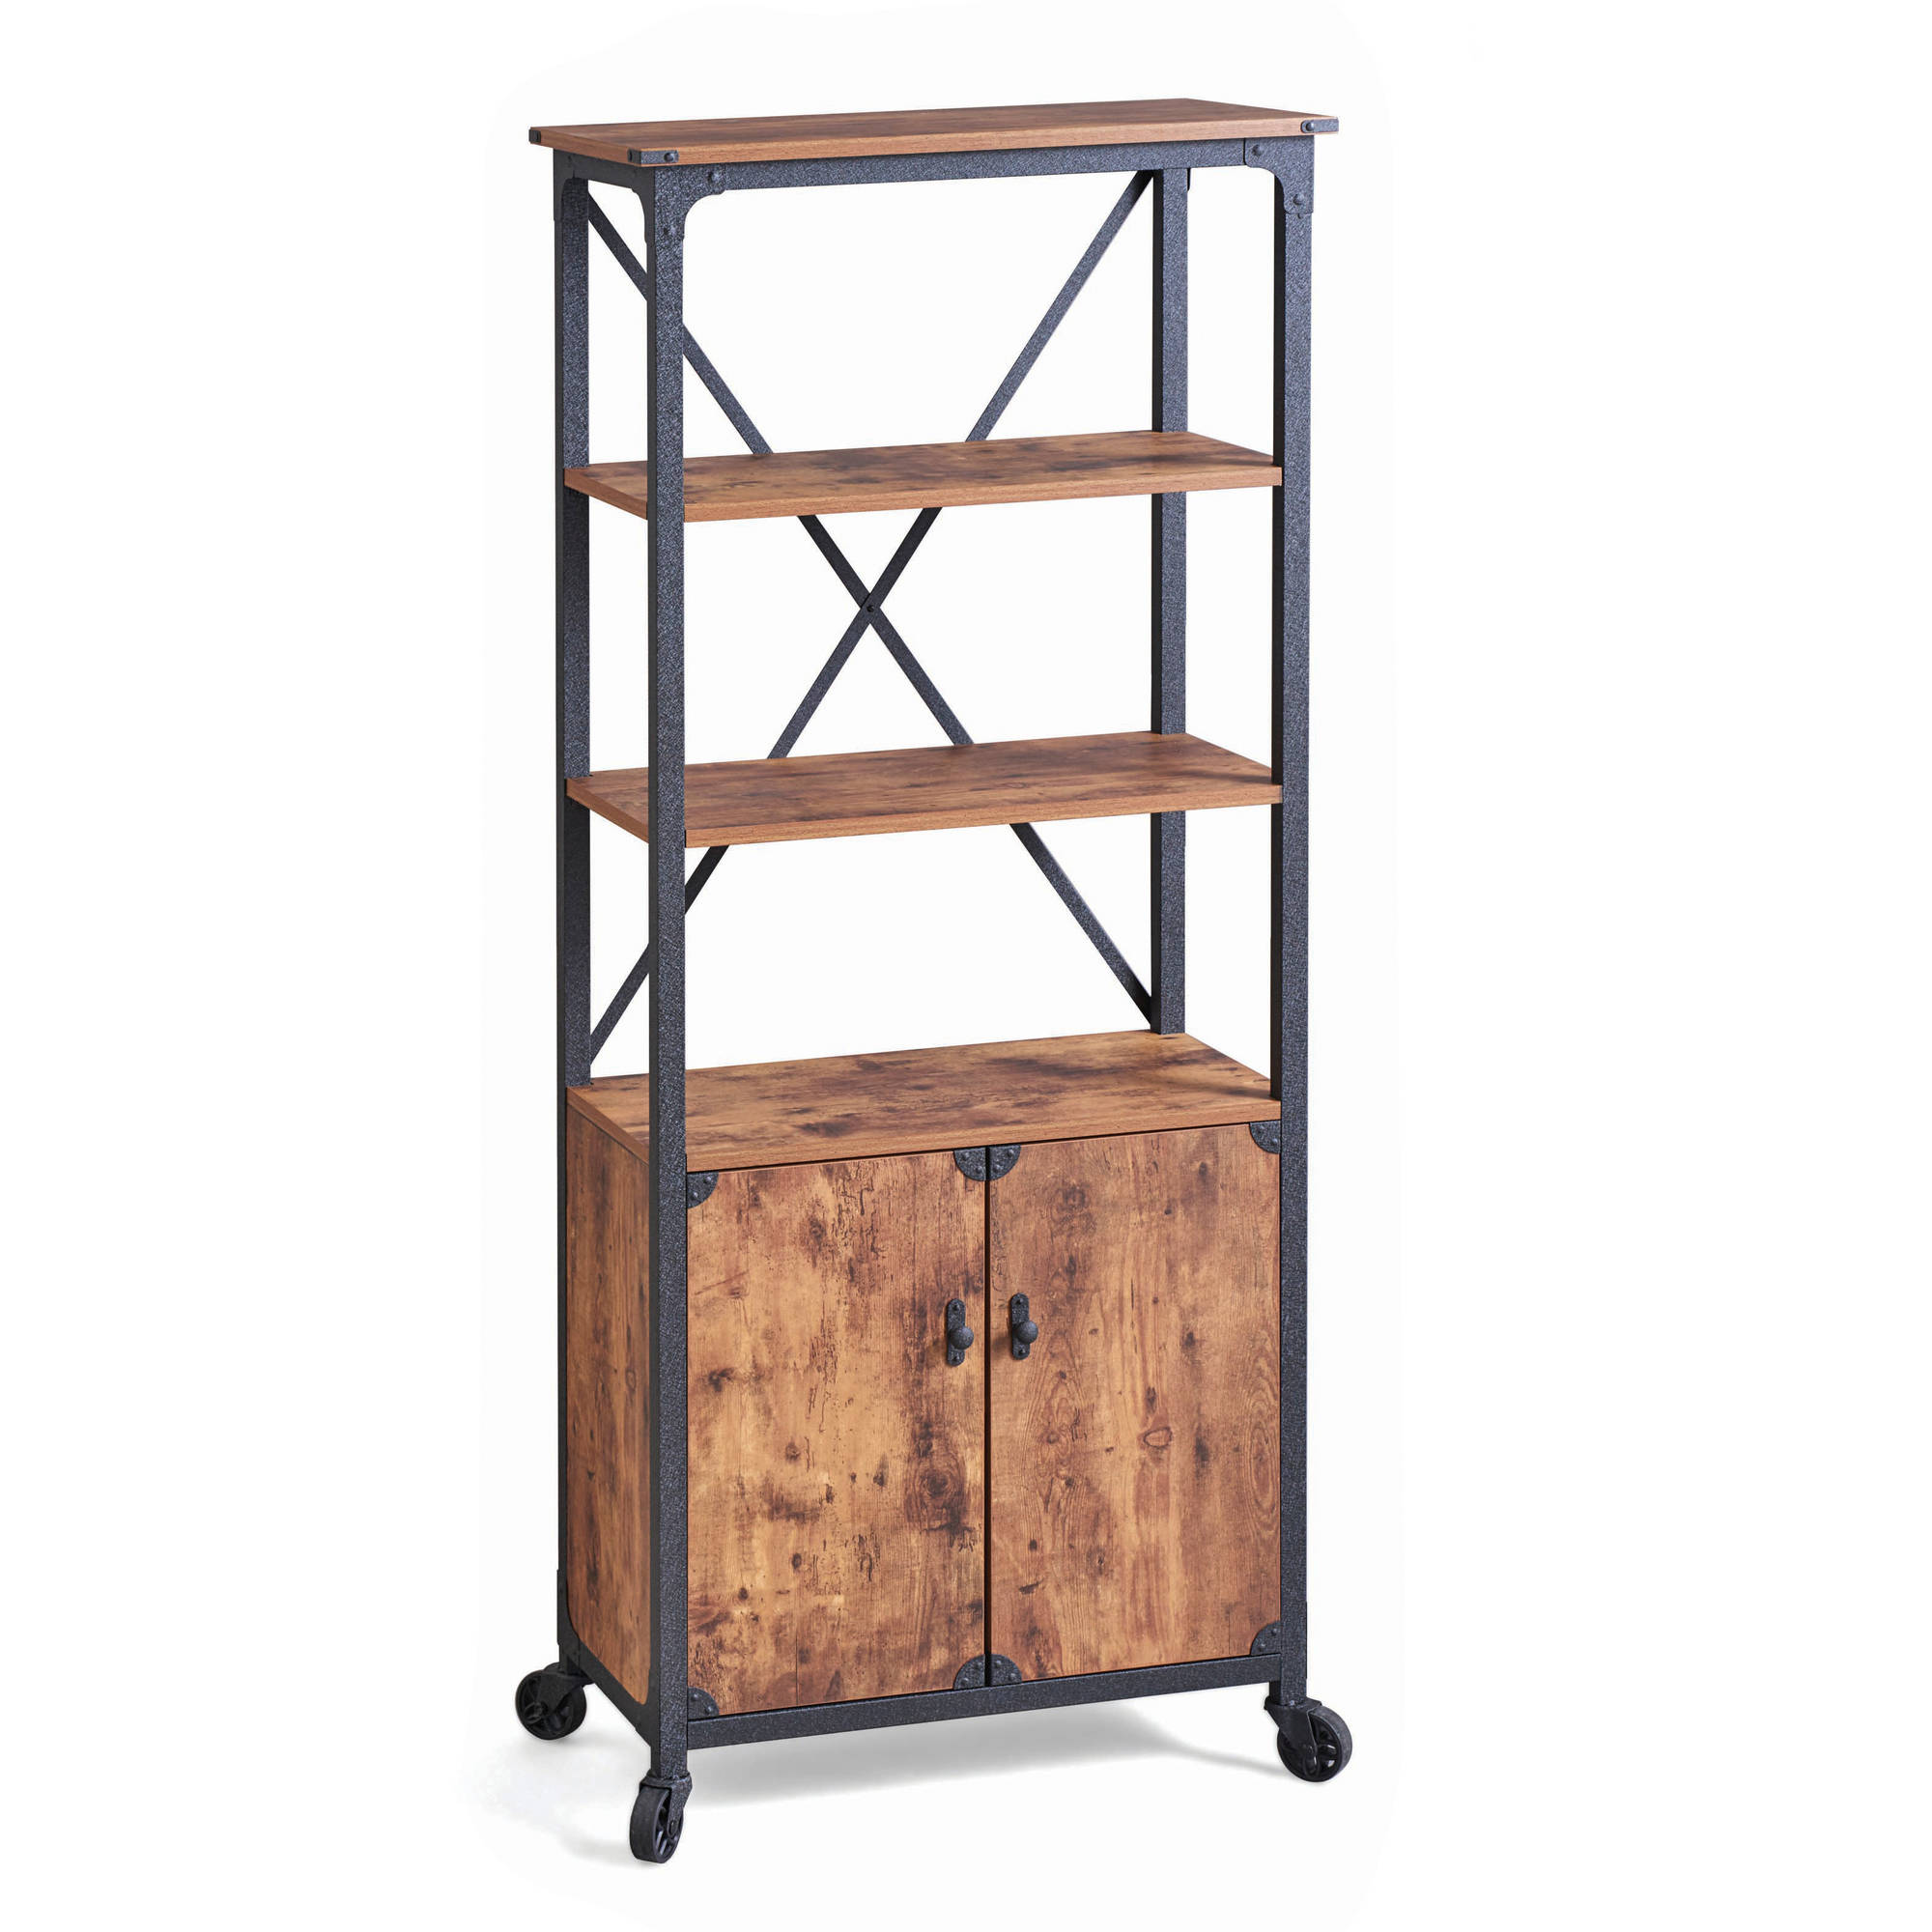 Better Homes & Gardens Rustic Country Library, Weathered Pine Finish